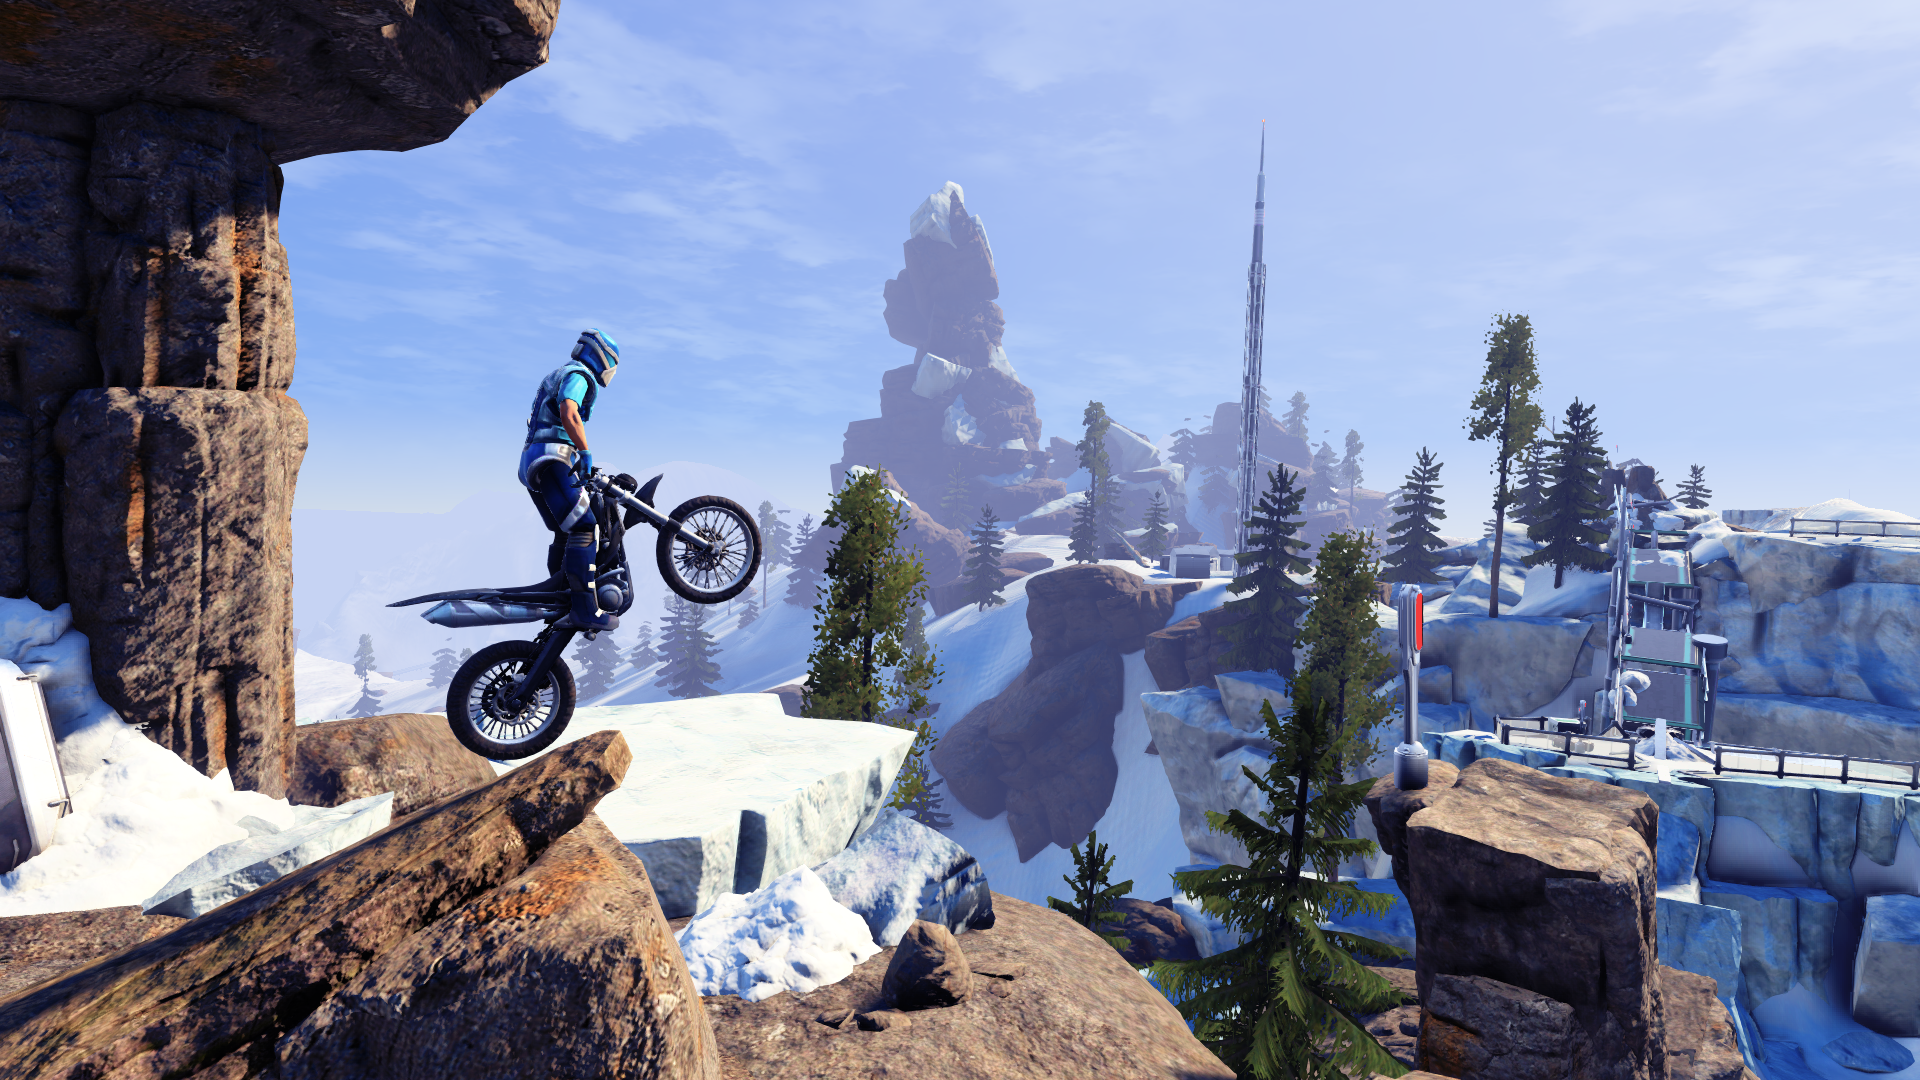 Fusion_Multiplayer_Supercross; Fusion_Single_Arctic; Fusion_Single_TurbineTerror